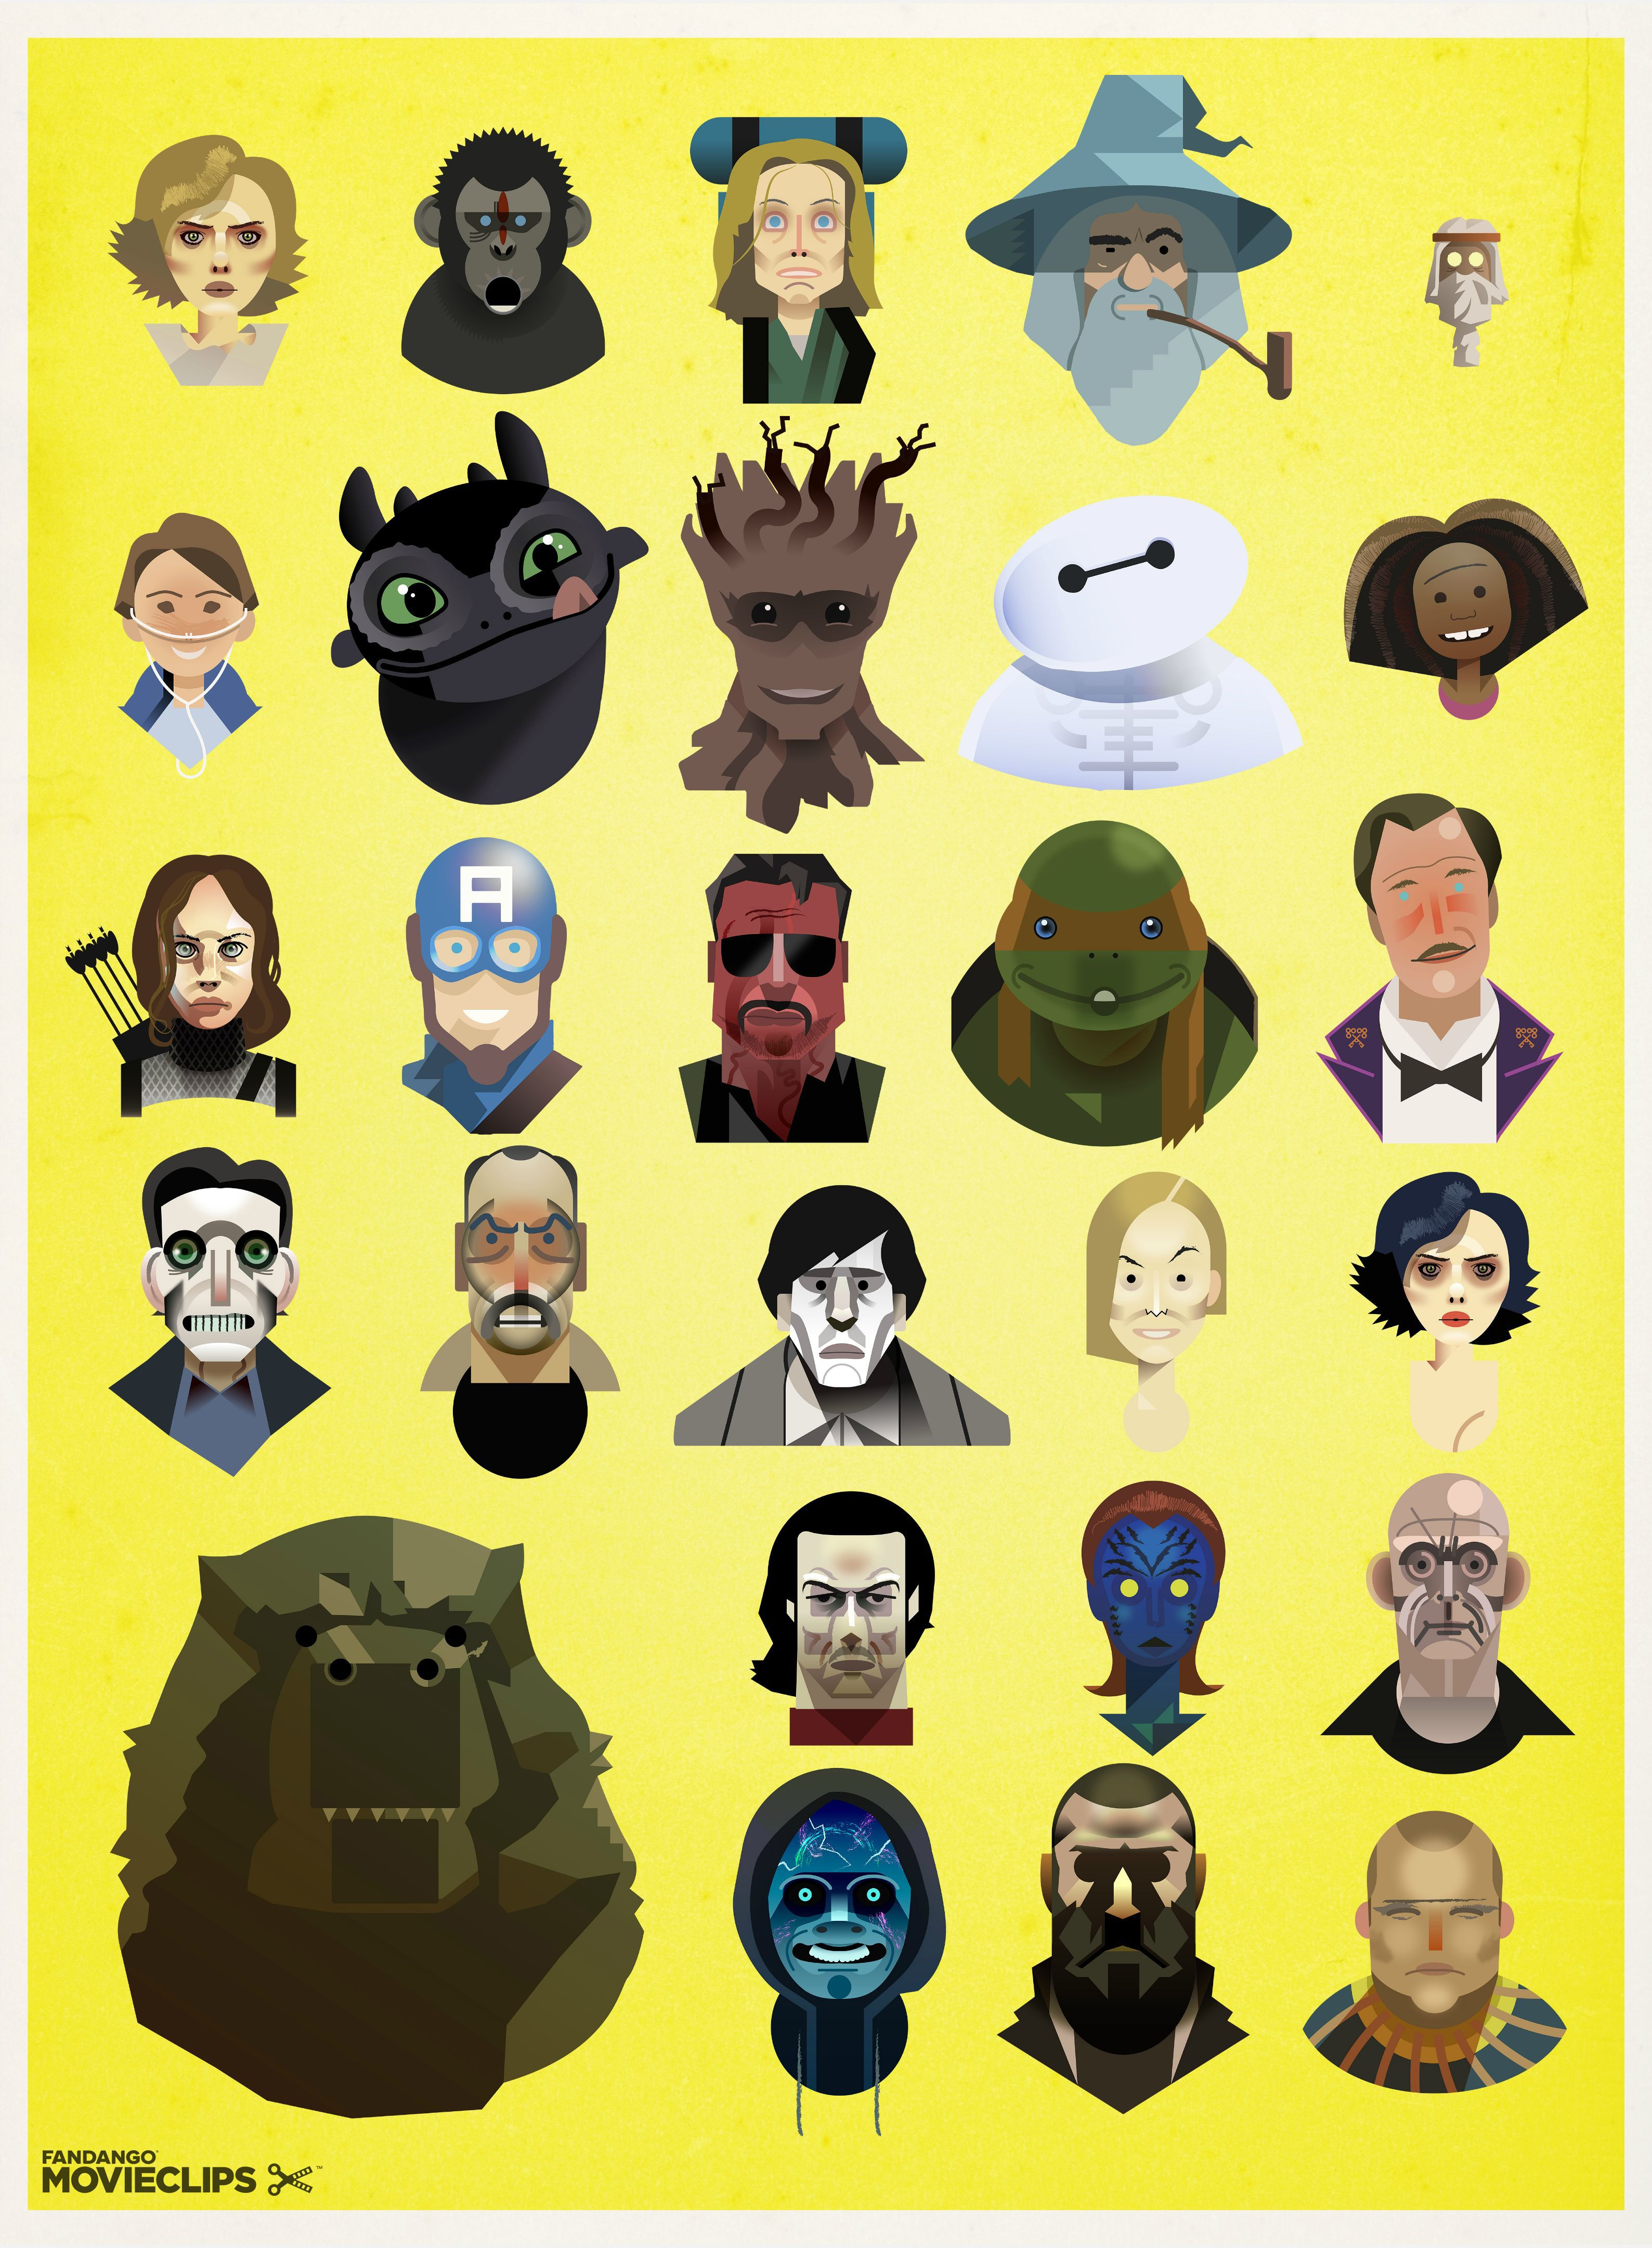 Awesome Movie Characters of 2014 Poster